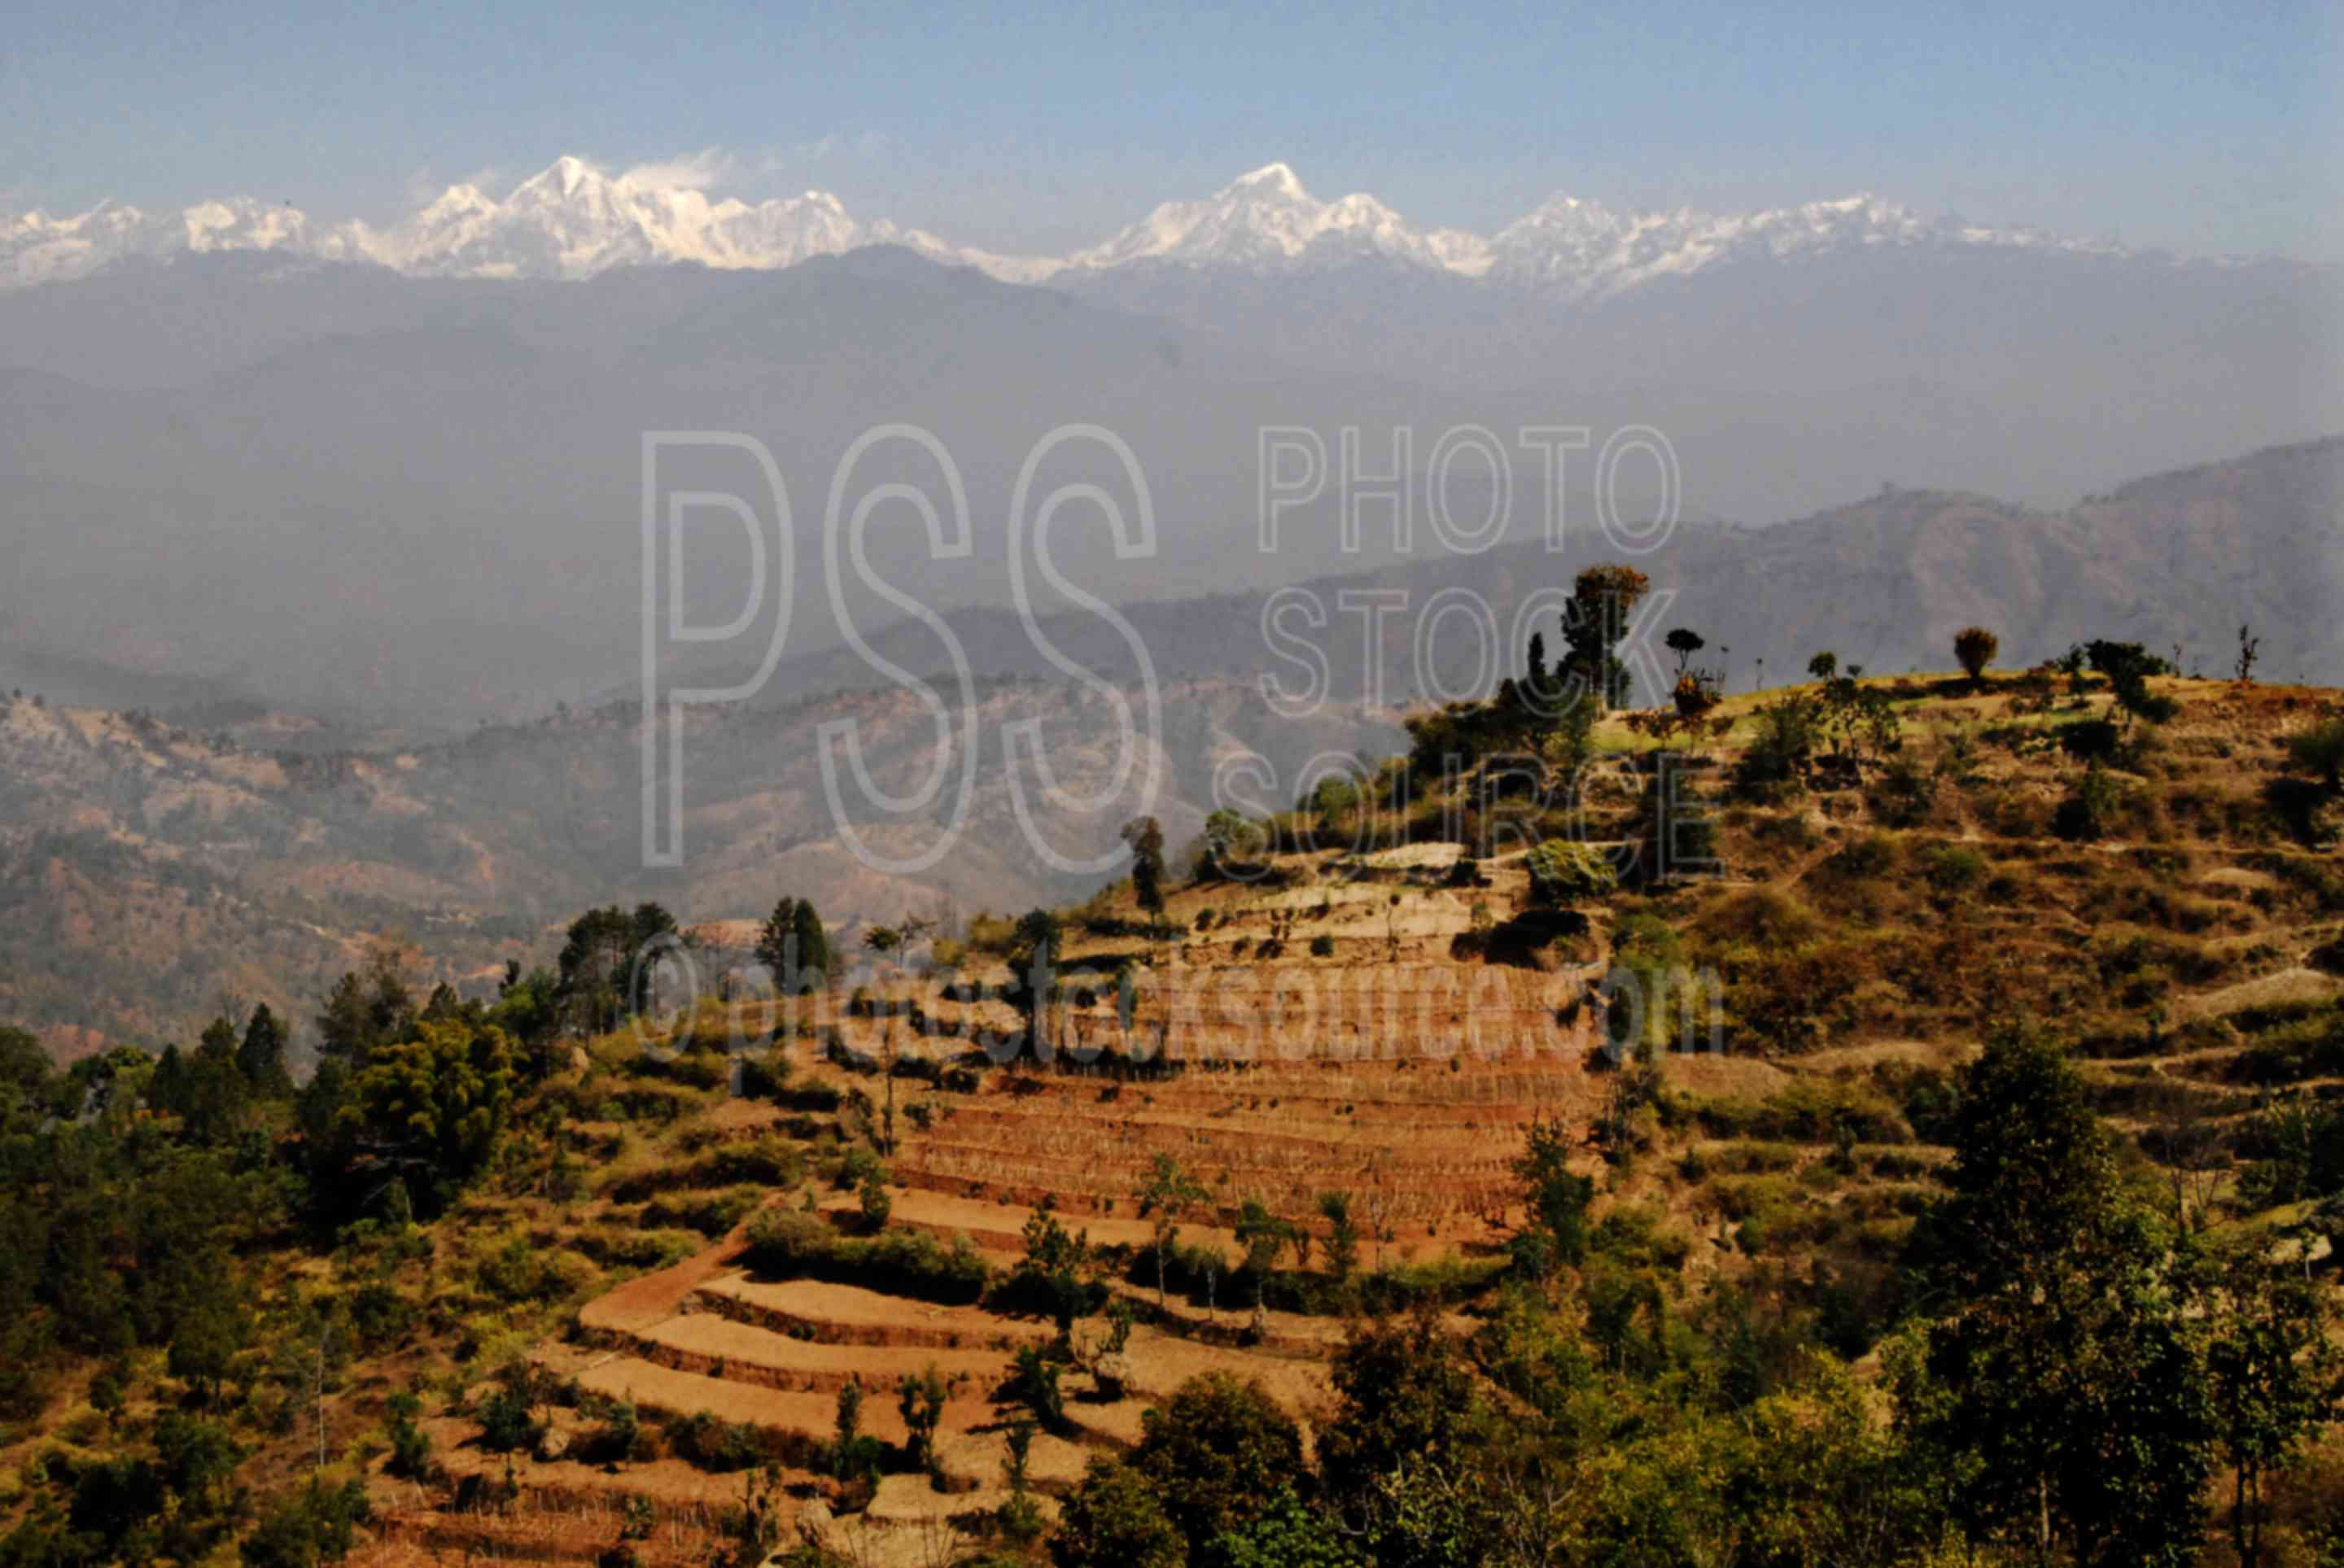 Terraced Foothills,mountains,snow capped,peaks,dorje lhakpa,phurbi chyachu,nature